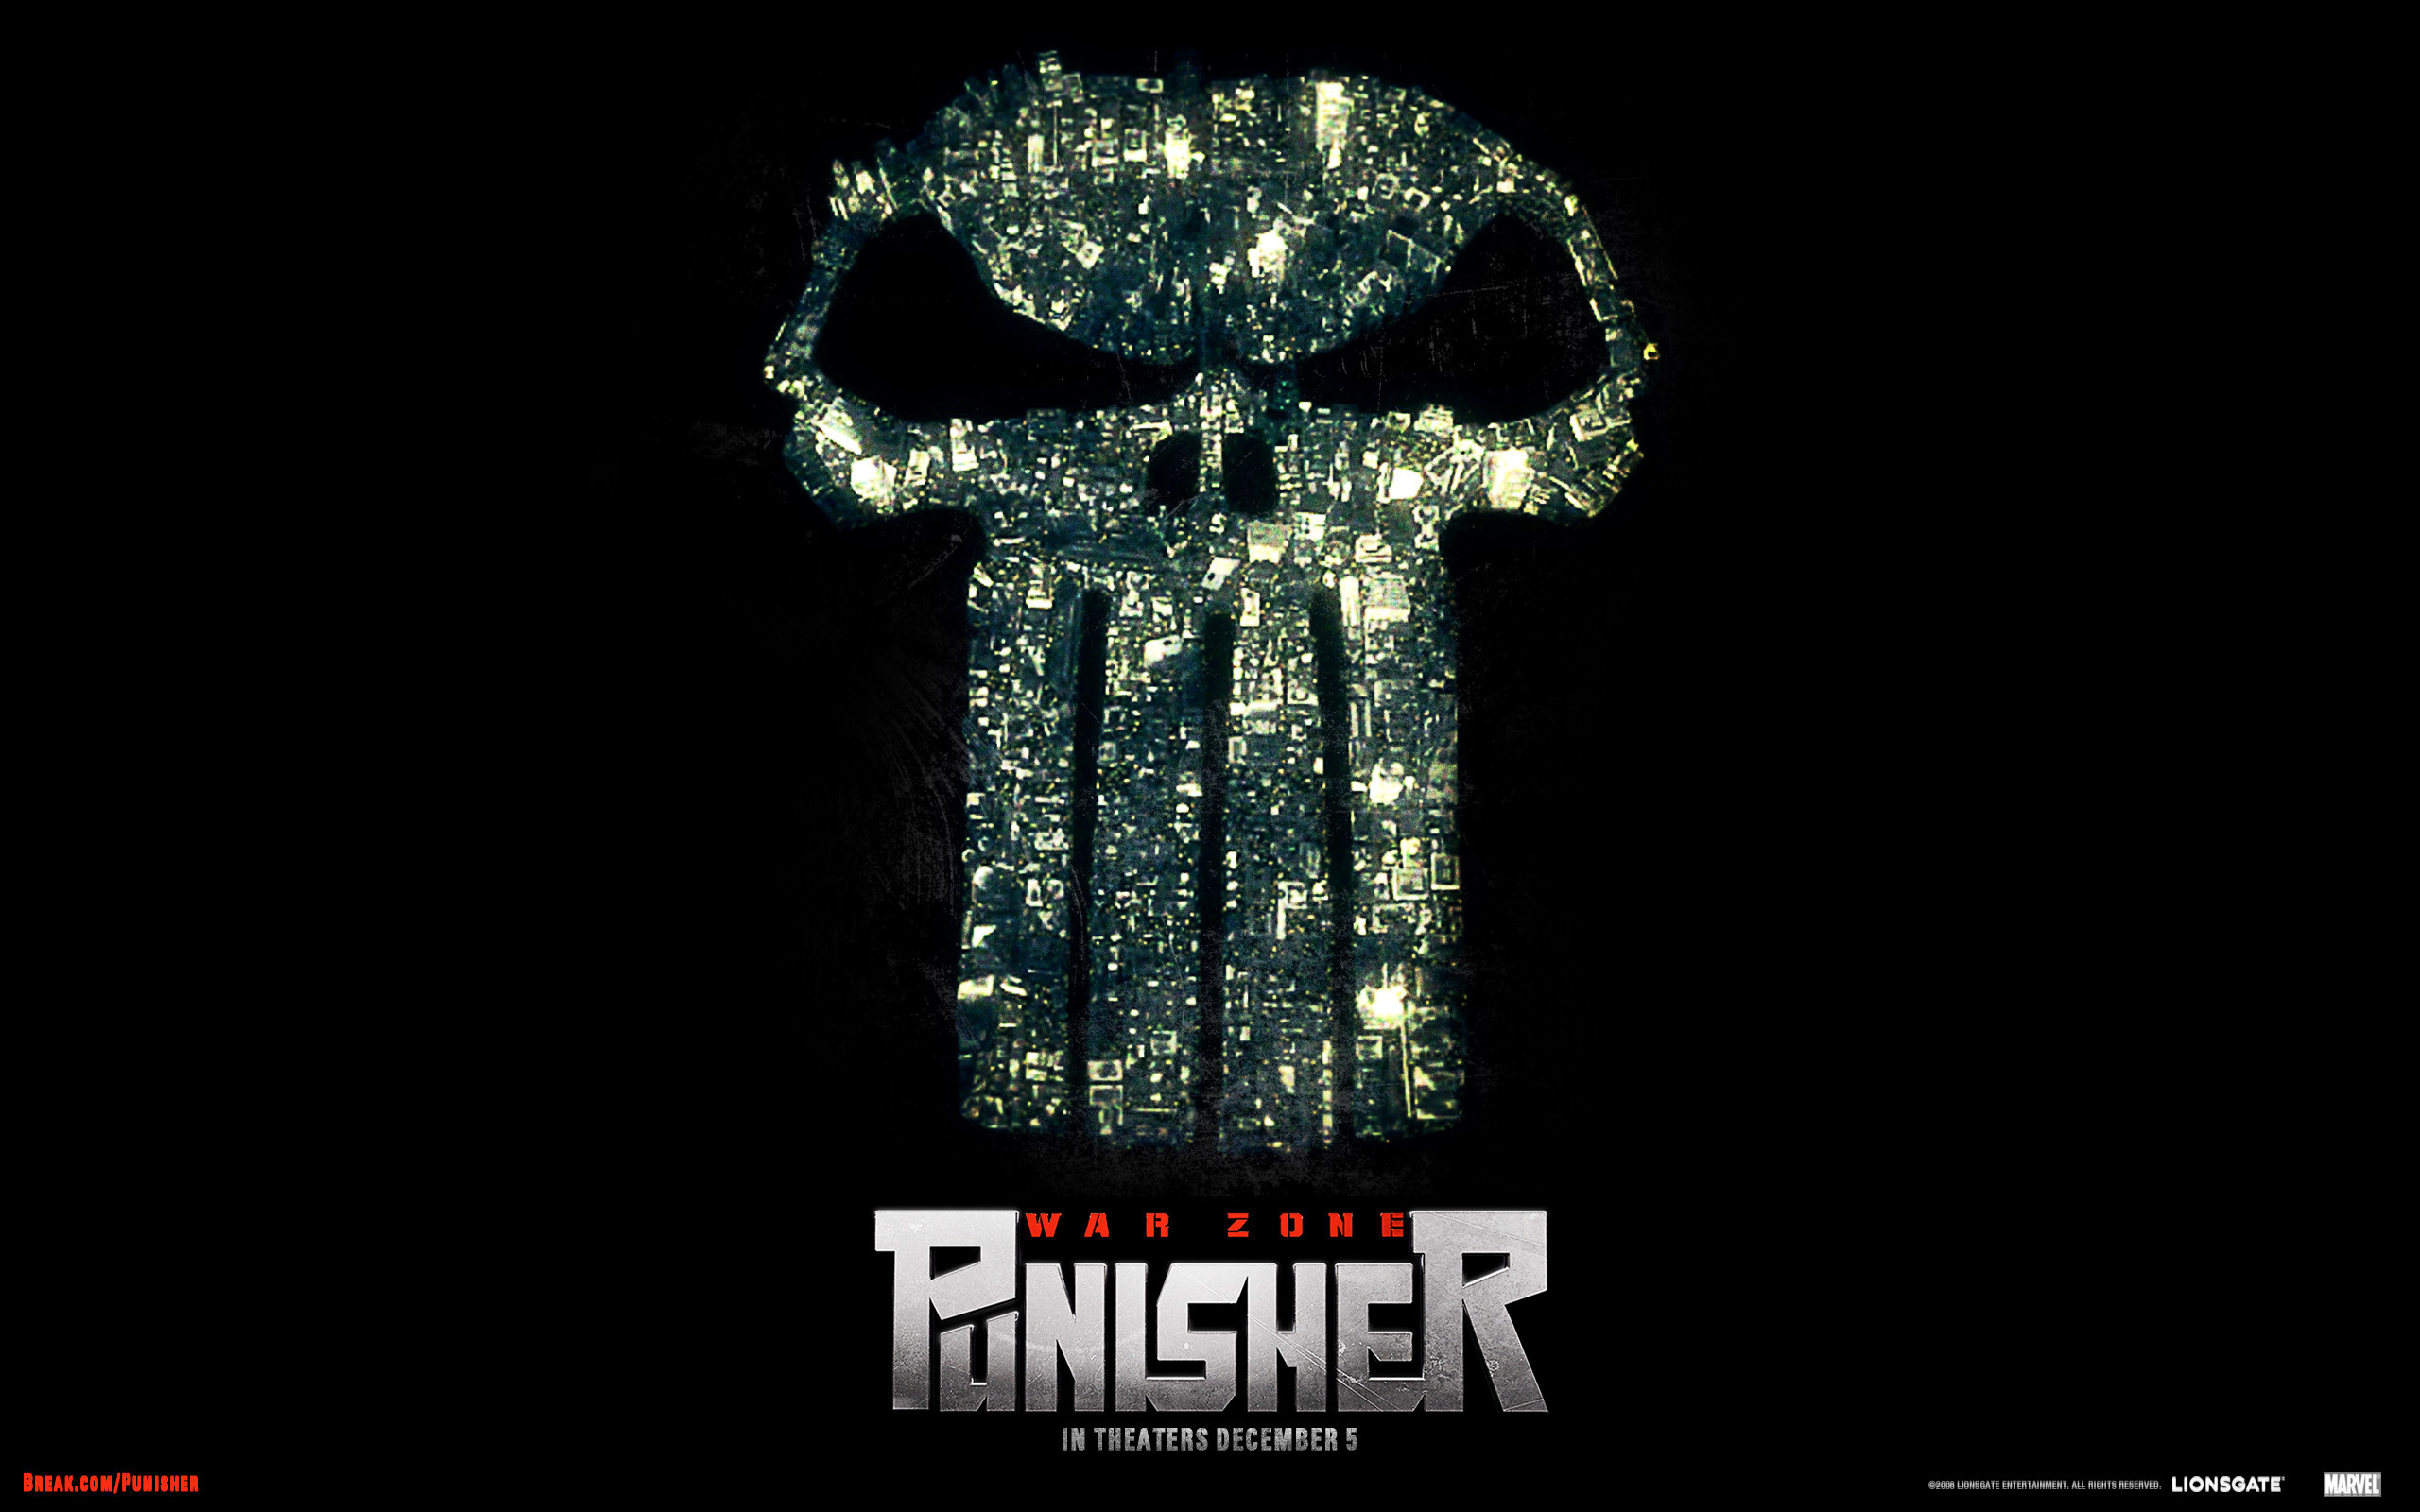 2560x1600 The Punisher wallpapers desktop